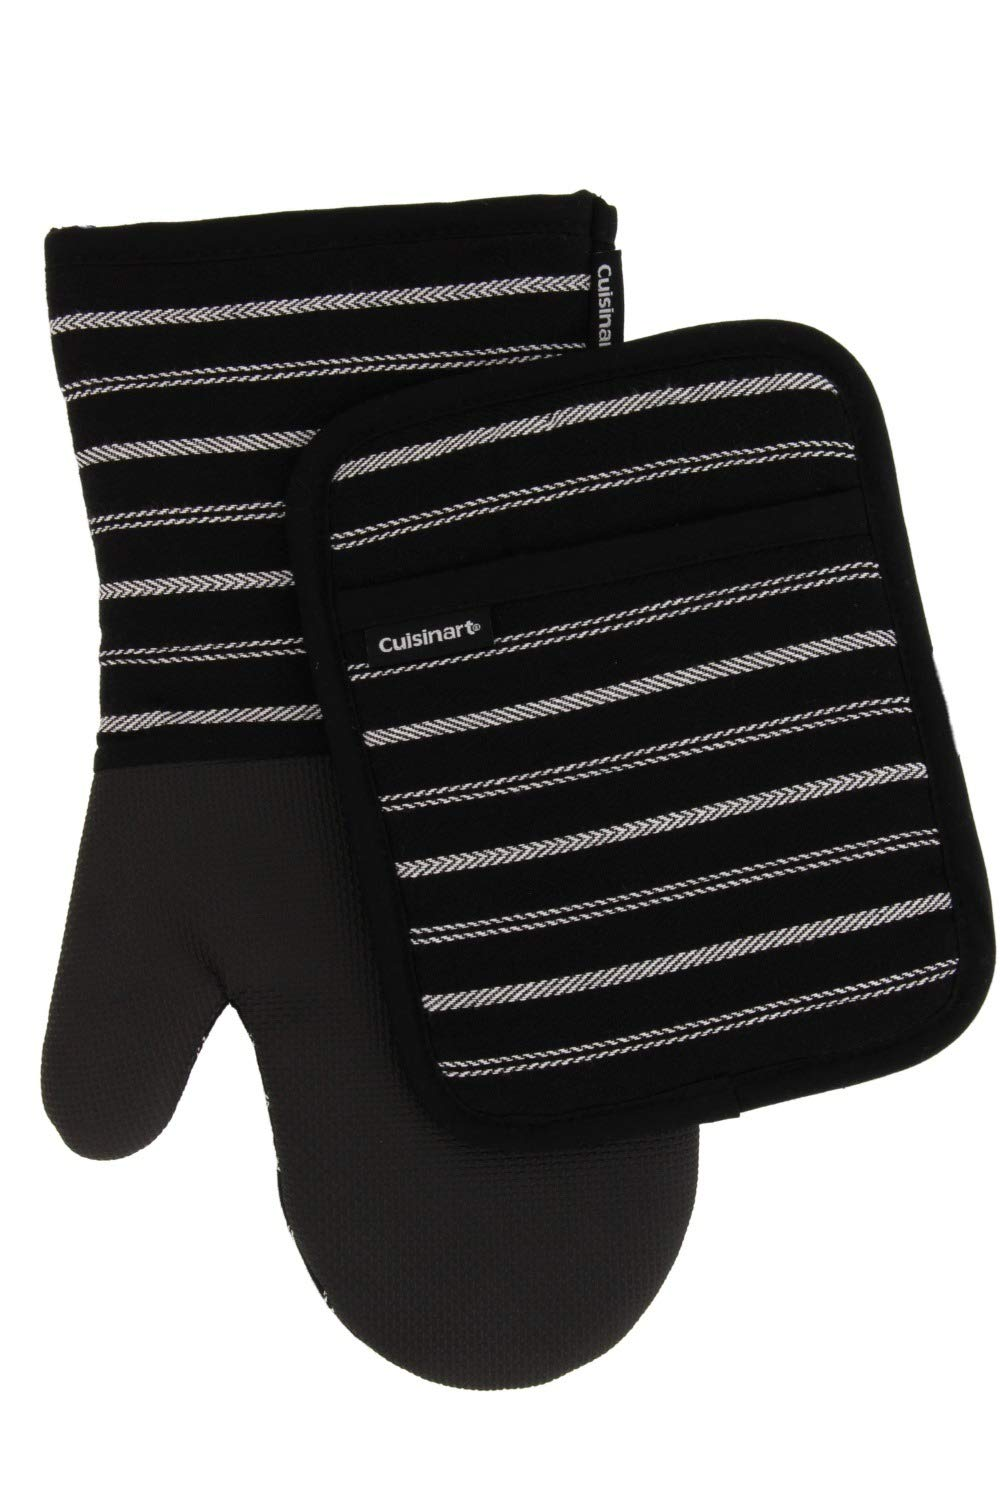 Cuisinart Kitchen Oven Mitt/Glove & Rectangle Potholder with Pocket Set w/Neoprene for Easy Gripping, Heat Resistant up to 500 Degrees F, Twill Stripe- Jet Black